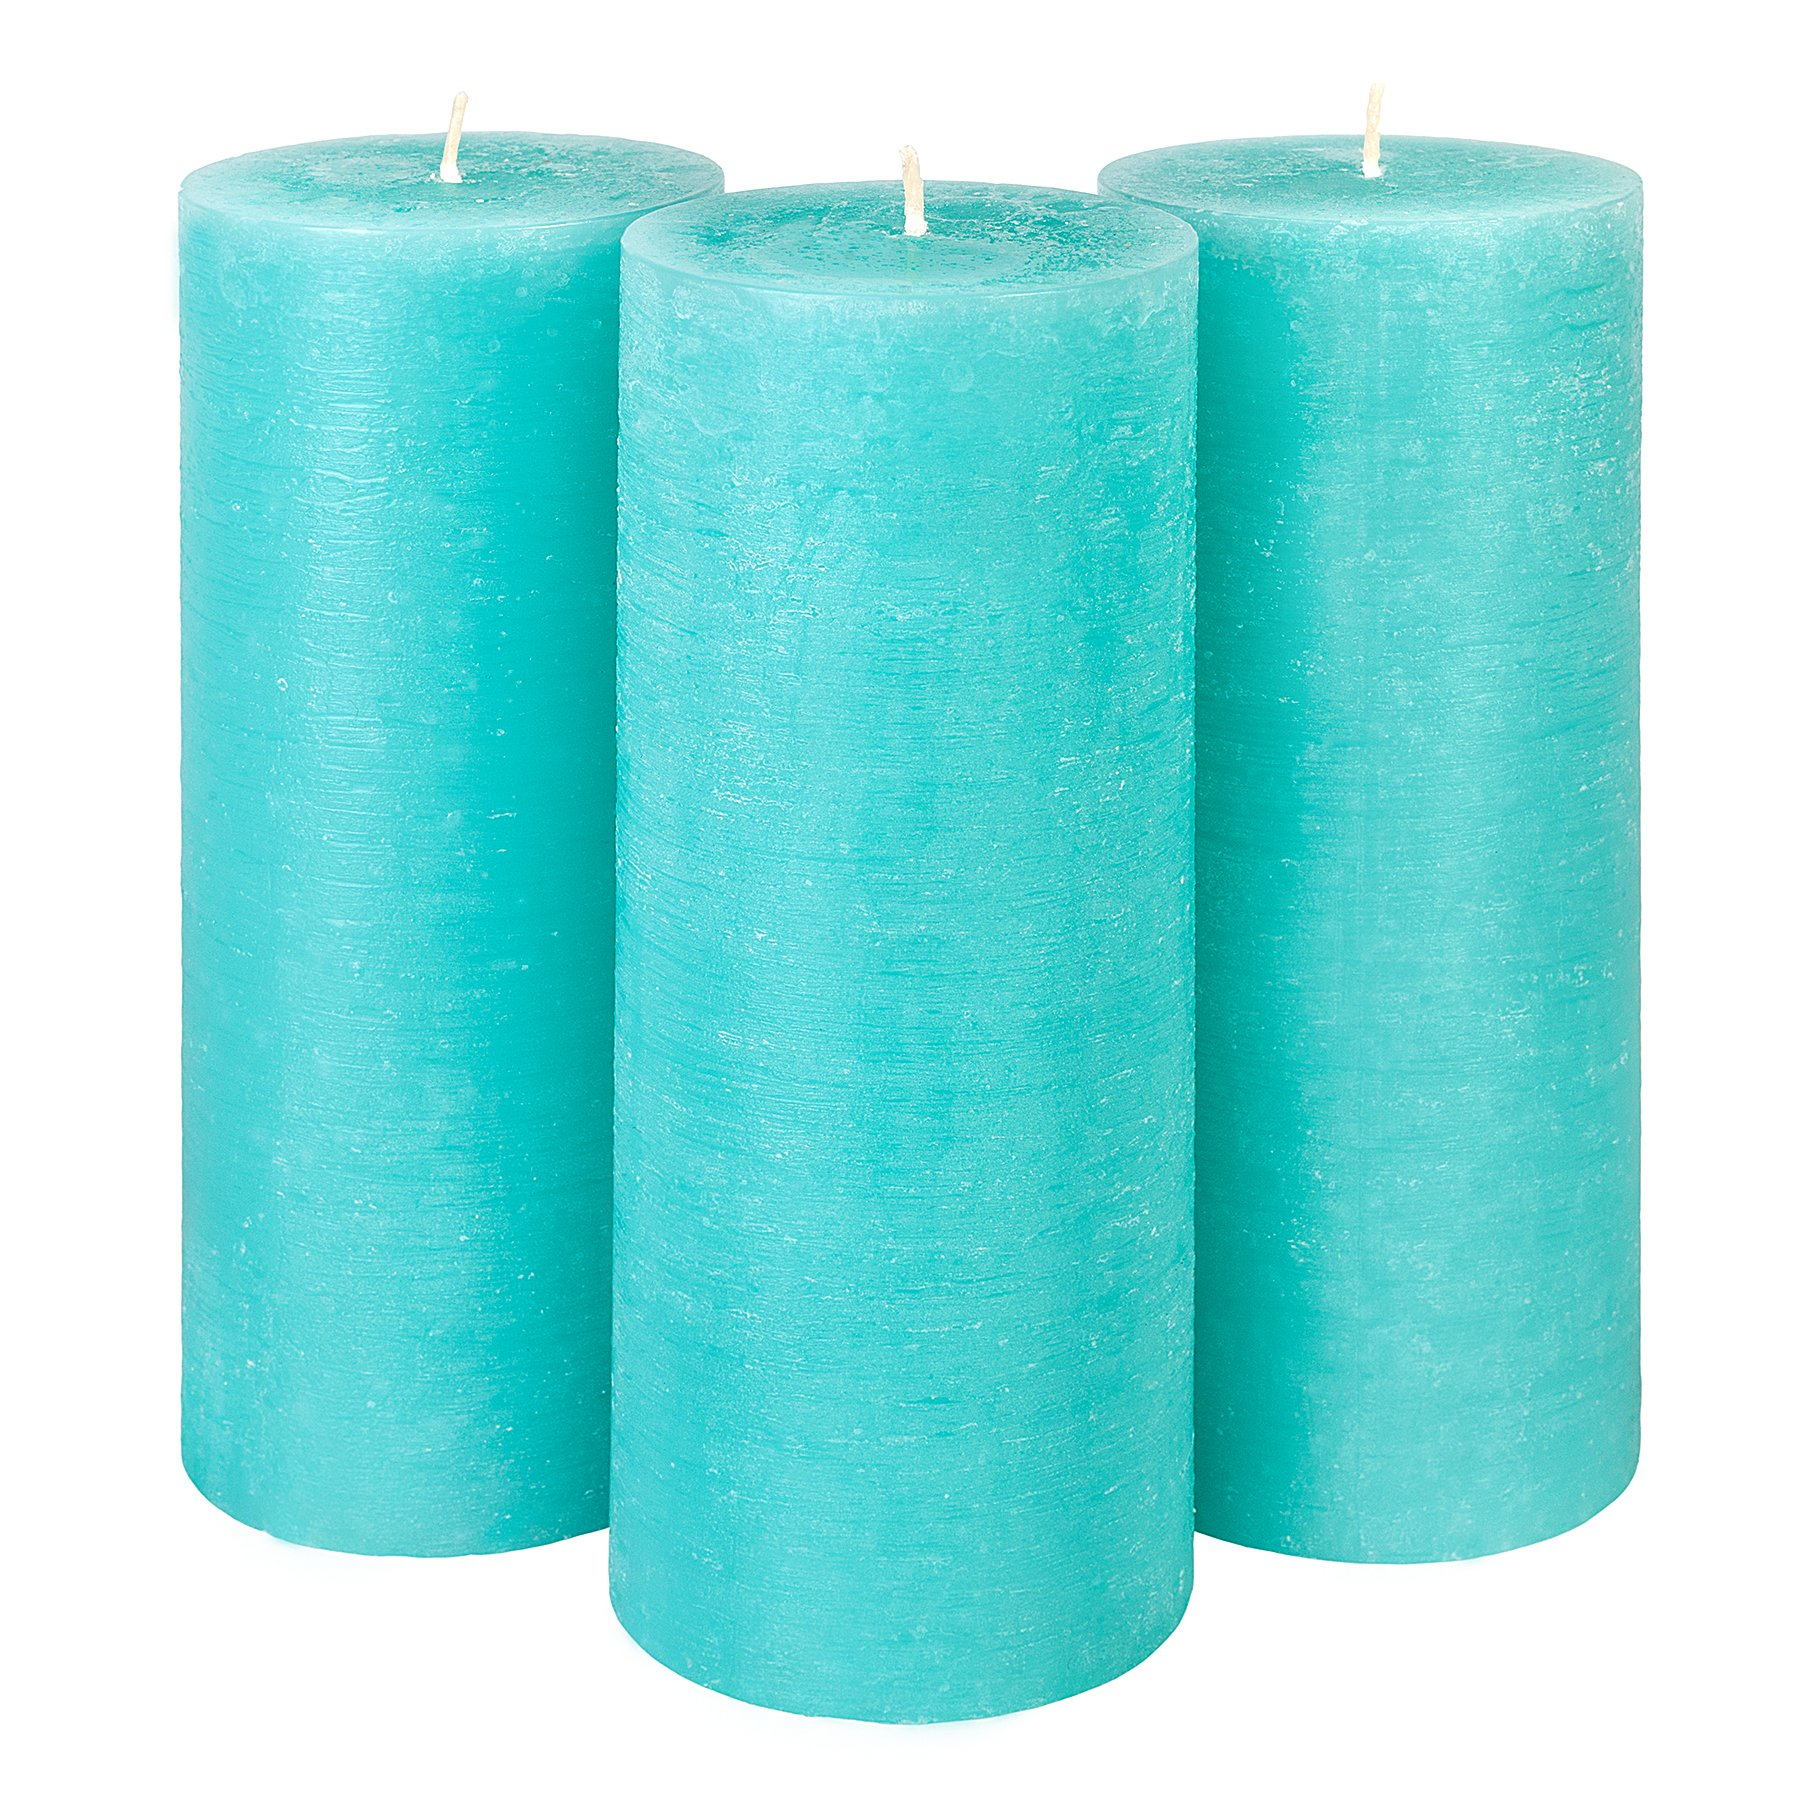 Candle Atelier Tiffany 3'' x 7.5'' Handmade Pillar Candles, Fragrance-free, Set of 3